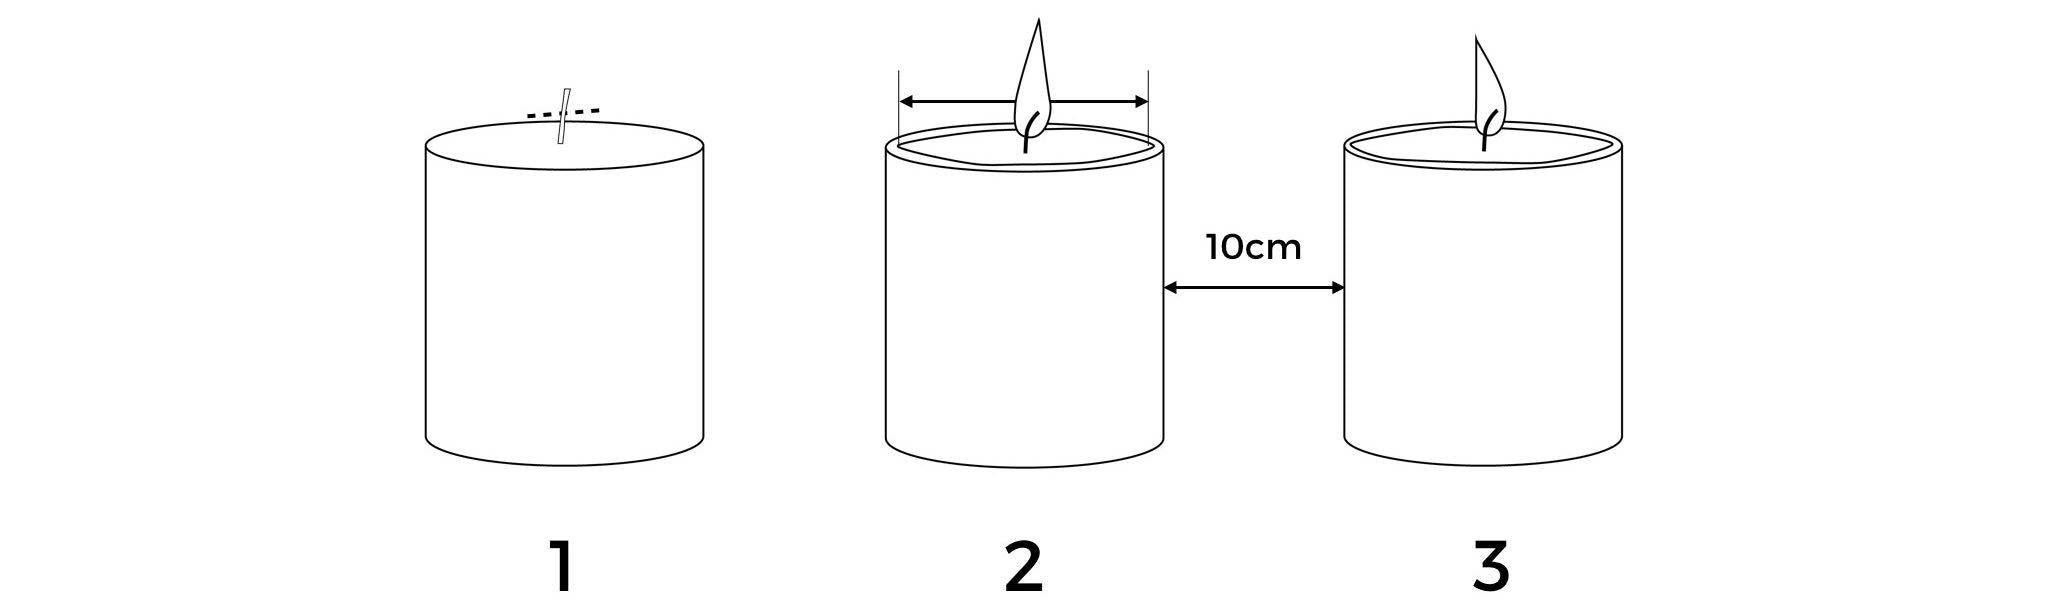 How to burn candles